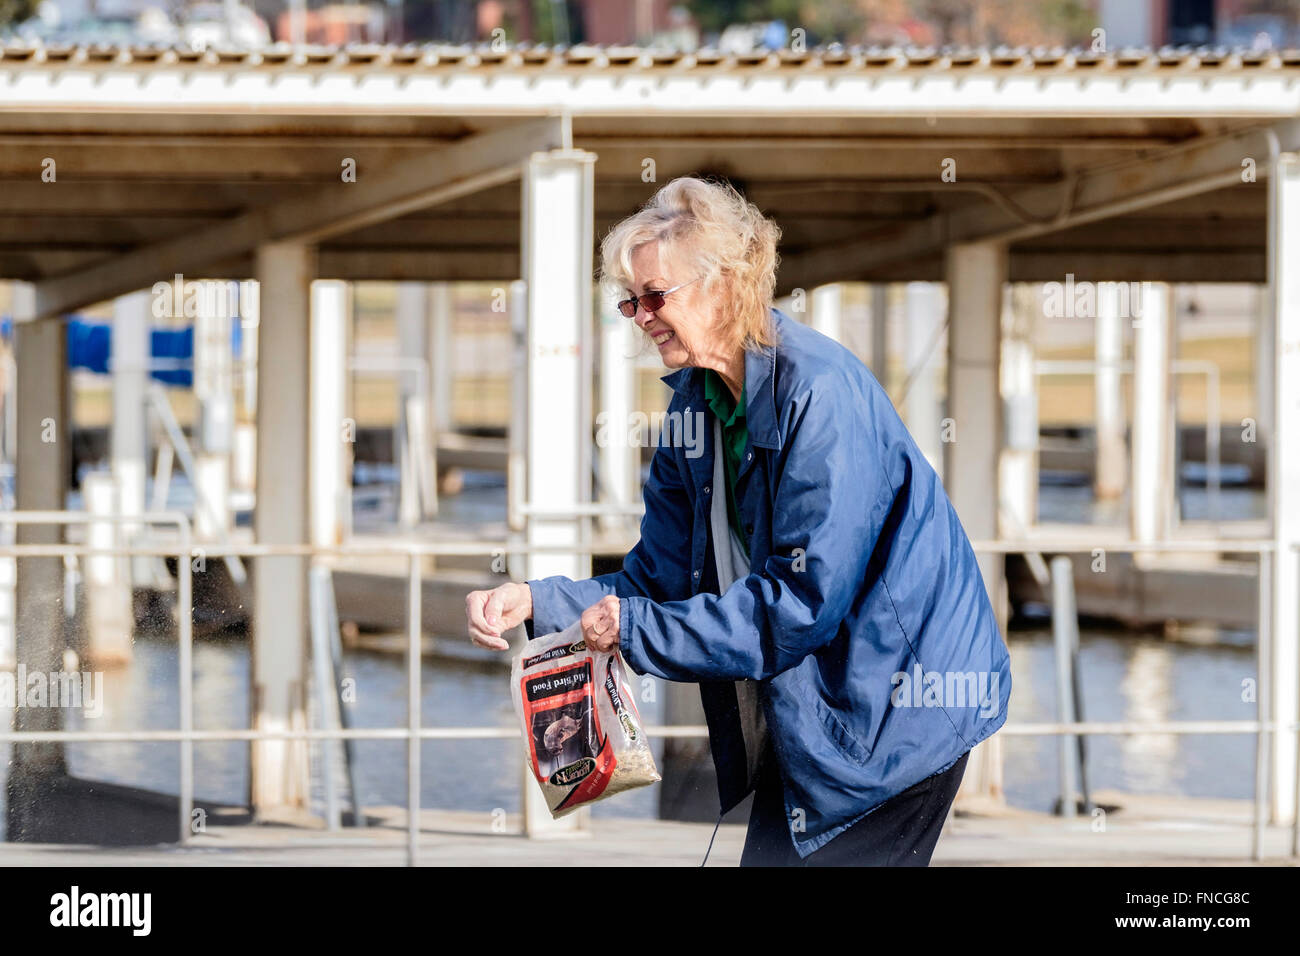 A senior woman throwing out bird seed for geese at a lake marina. Oklahoma, USA. - Stock Image